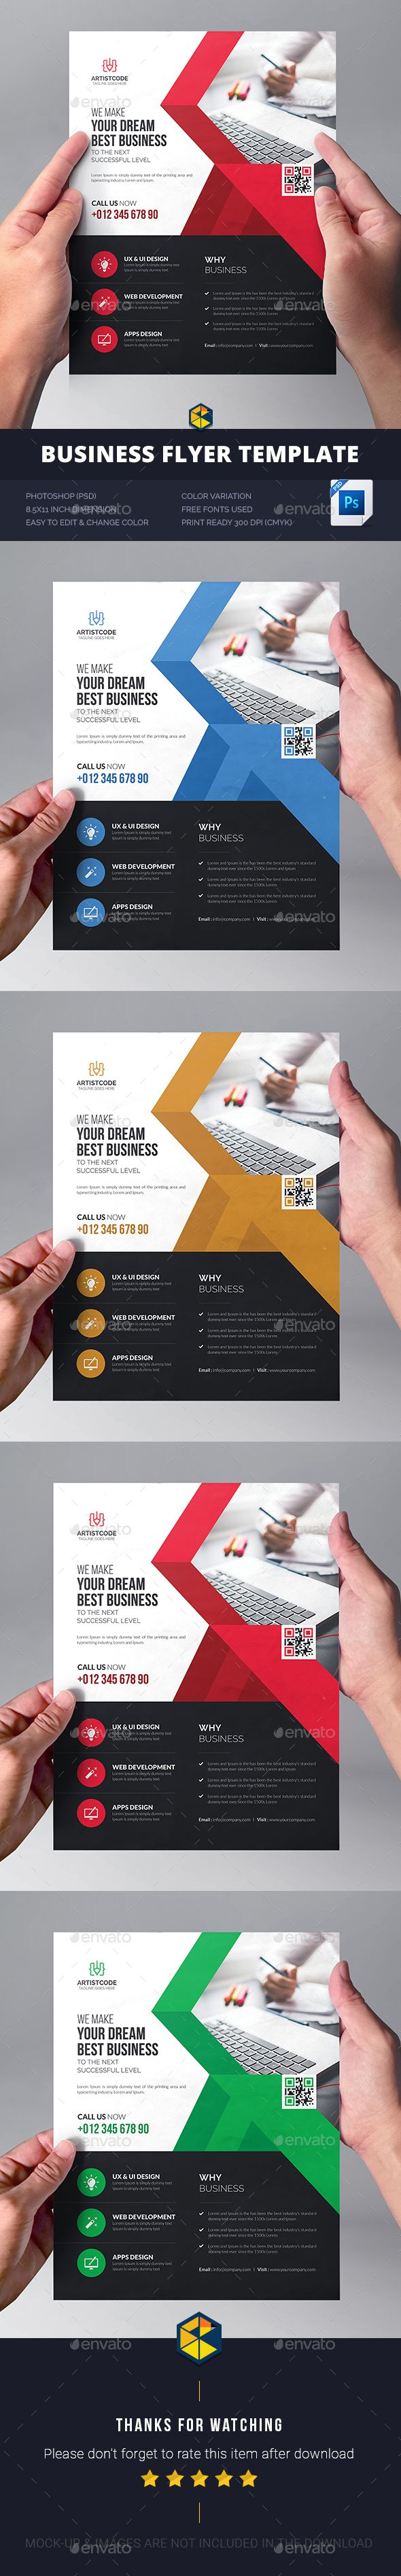 Corporate Business Flyer Template PSD. Download here: https://graphicriver.net/item/corporate-business-flyer/17467673?ref=ksioks